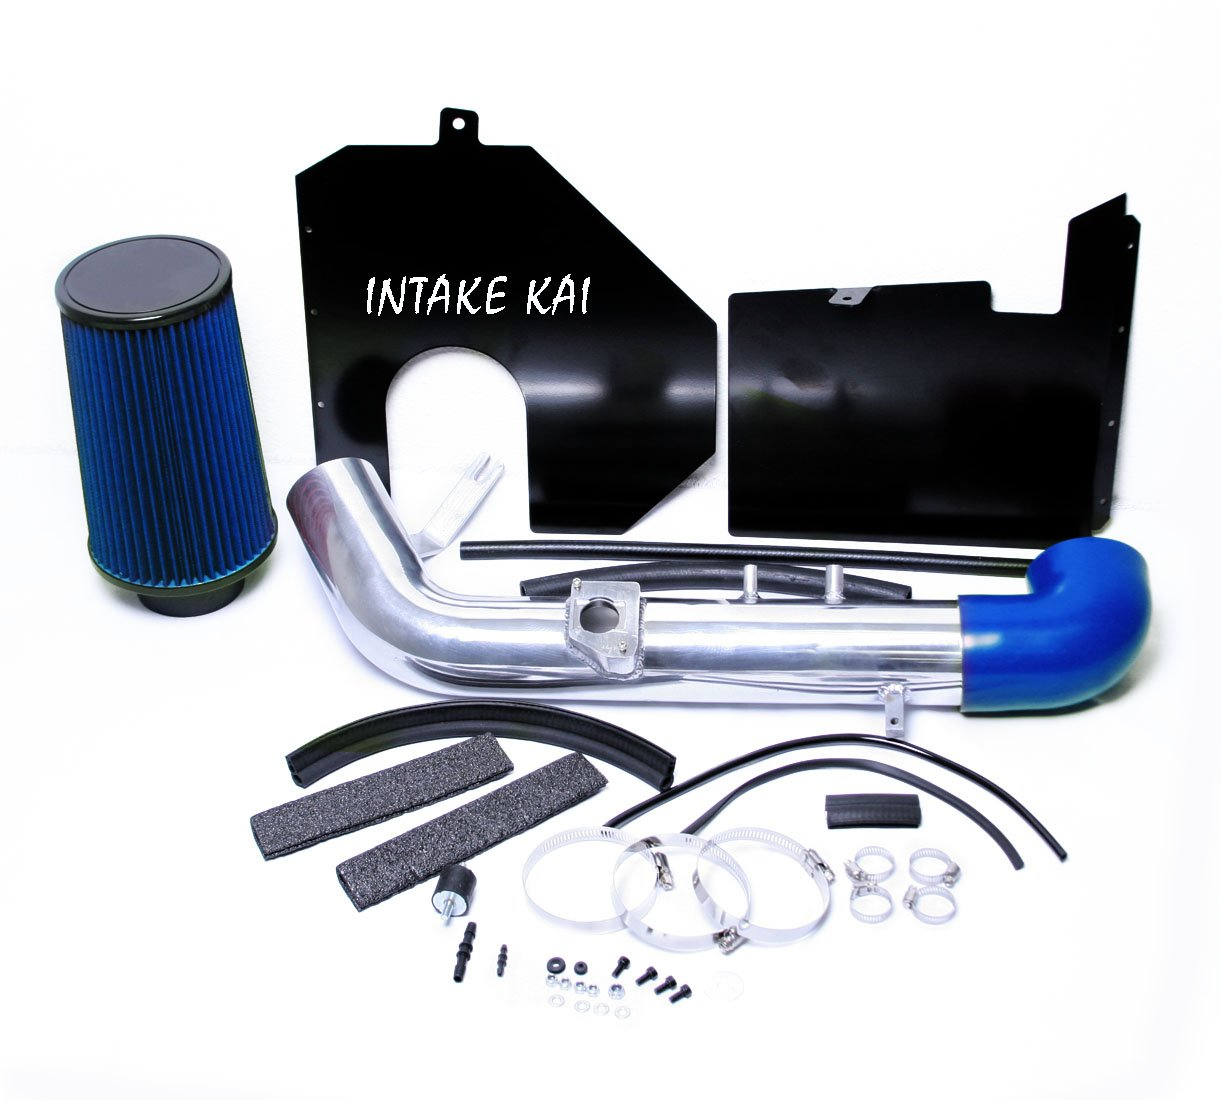 PERFORMANCE HEATSHIELD COLD AIR INTAKE KIT + FILTER FOR 2000-2004 TOYOTA TUNDRA 2001-2004 TOYOTA SEQUOIA 4.7 4.7L V8 ENGINE (BLUE)